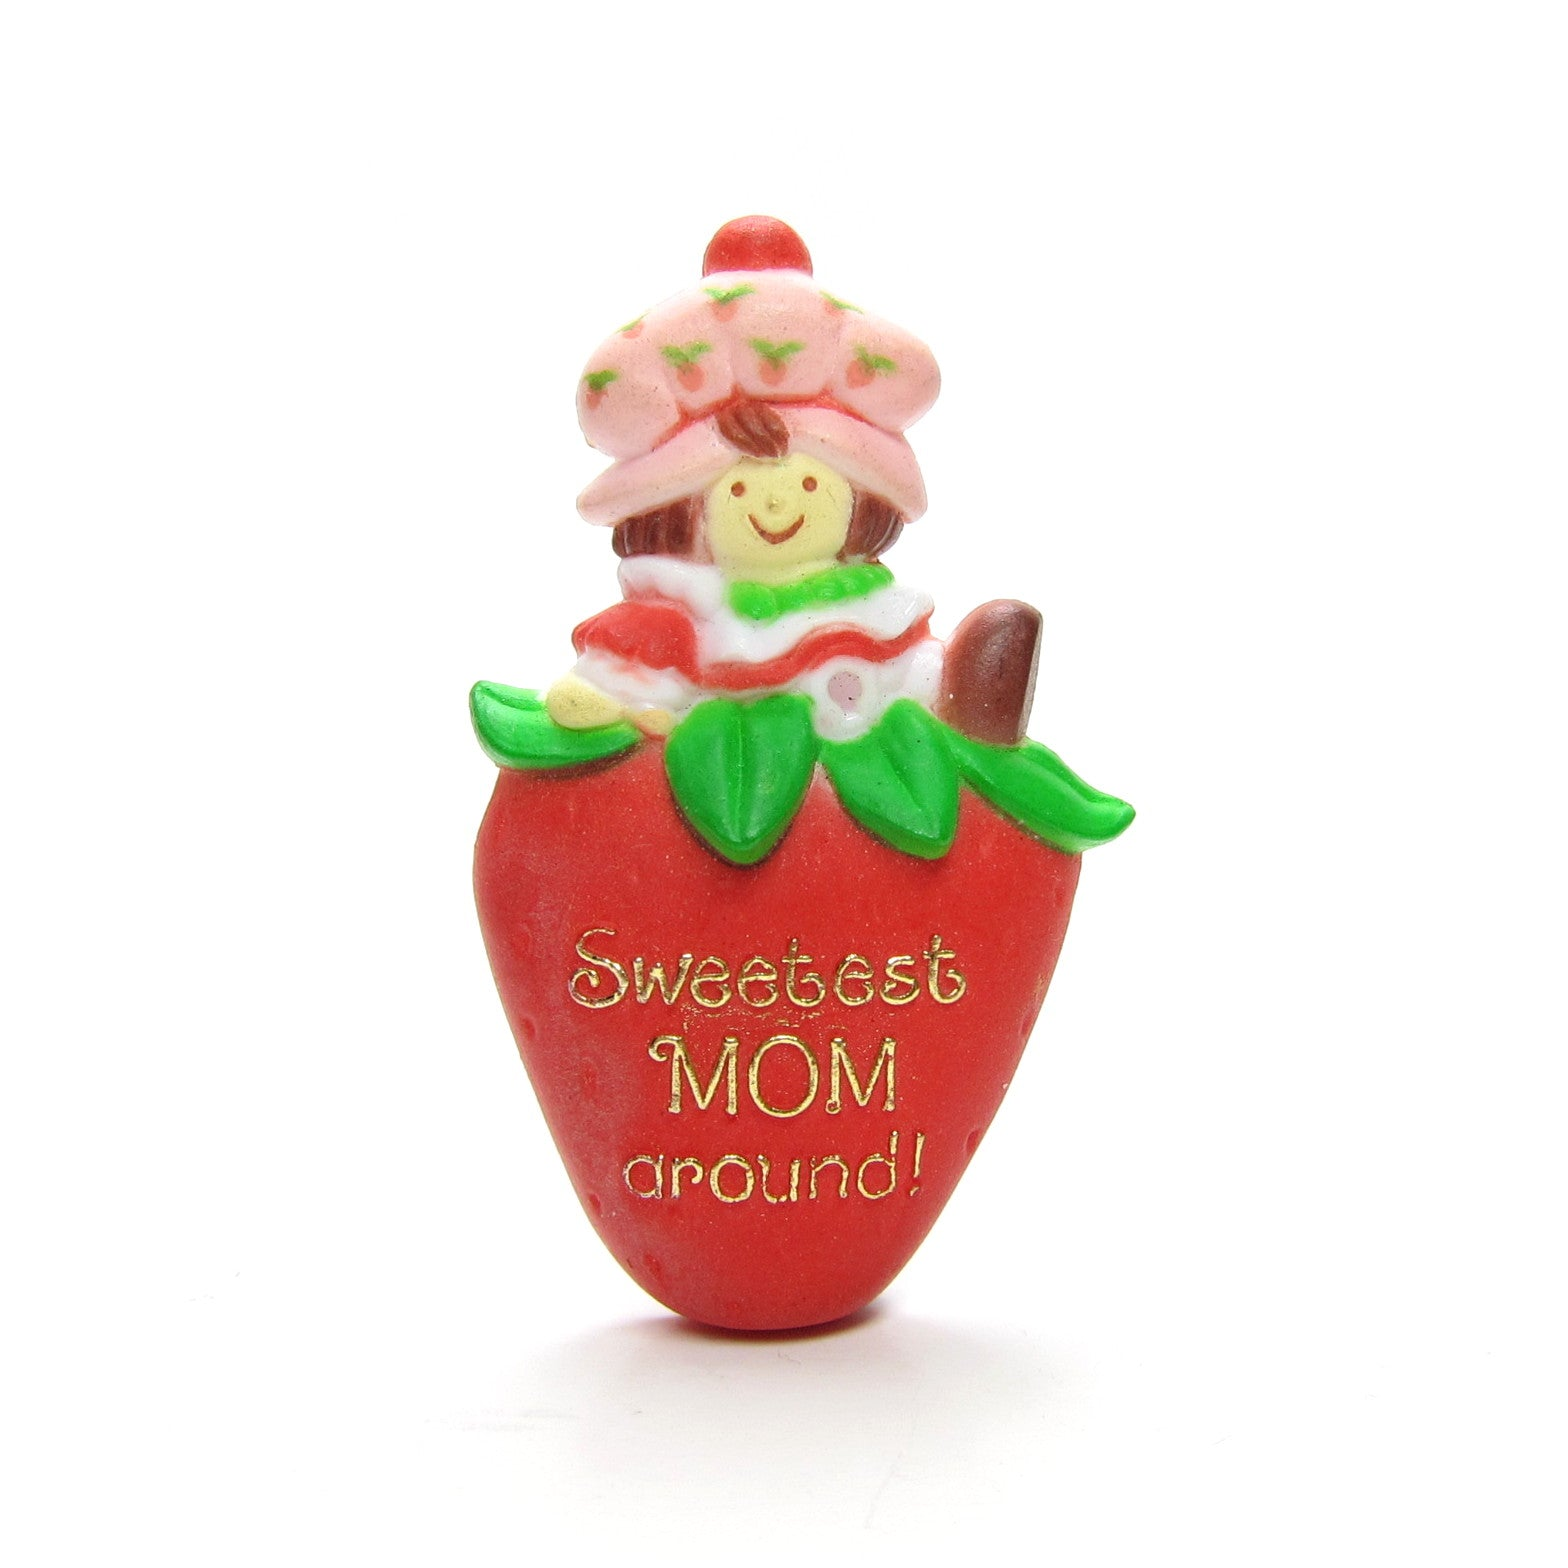 Strawberry Shortcake Sweetest Mom Around pin